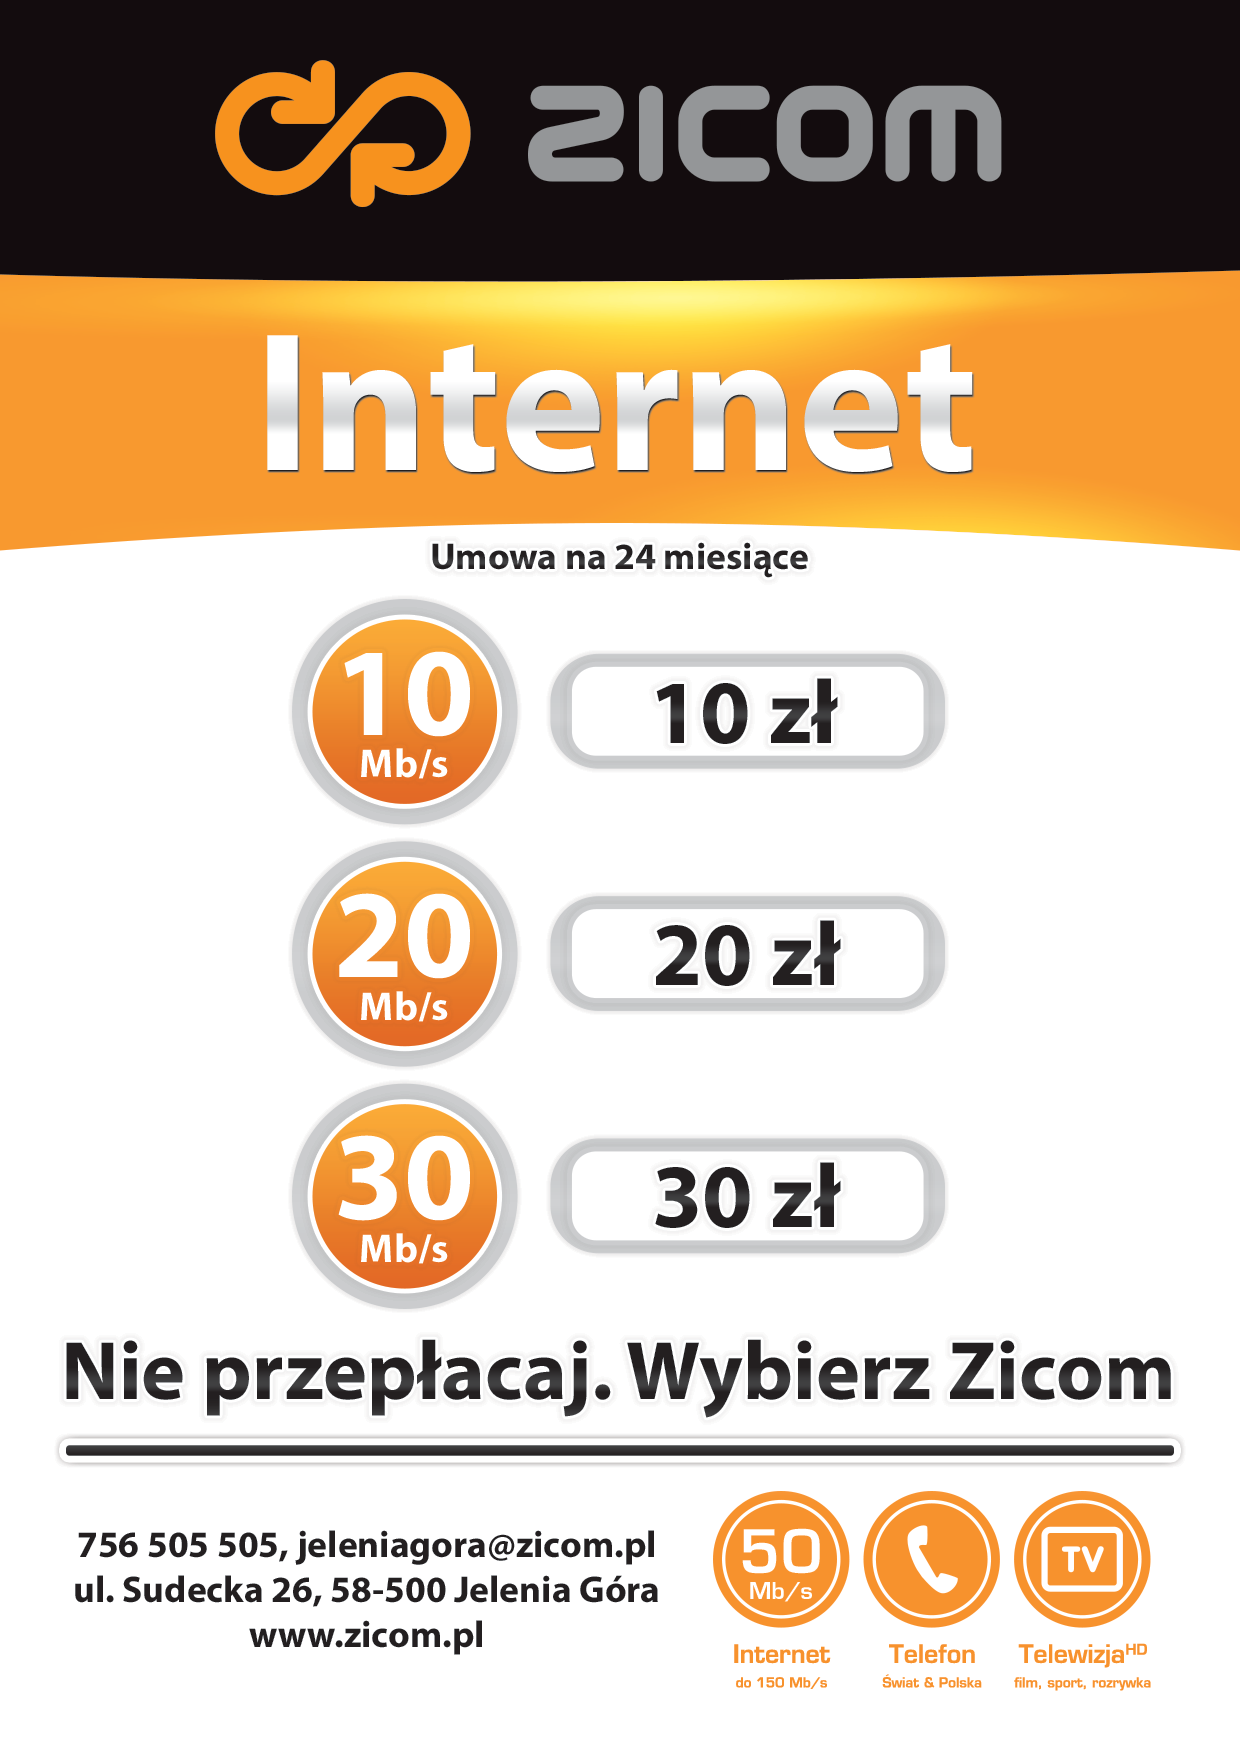 ZICOM - Flyer A6 - Internet. Back